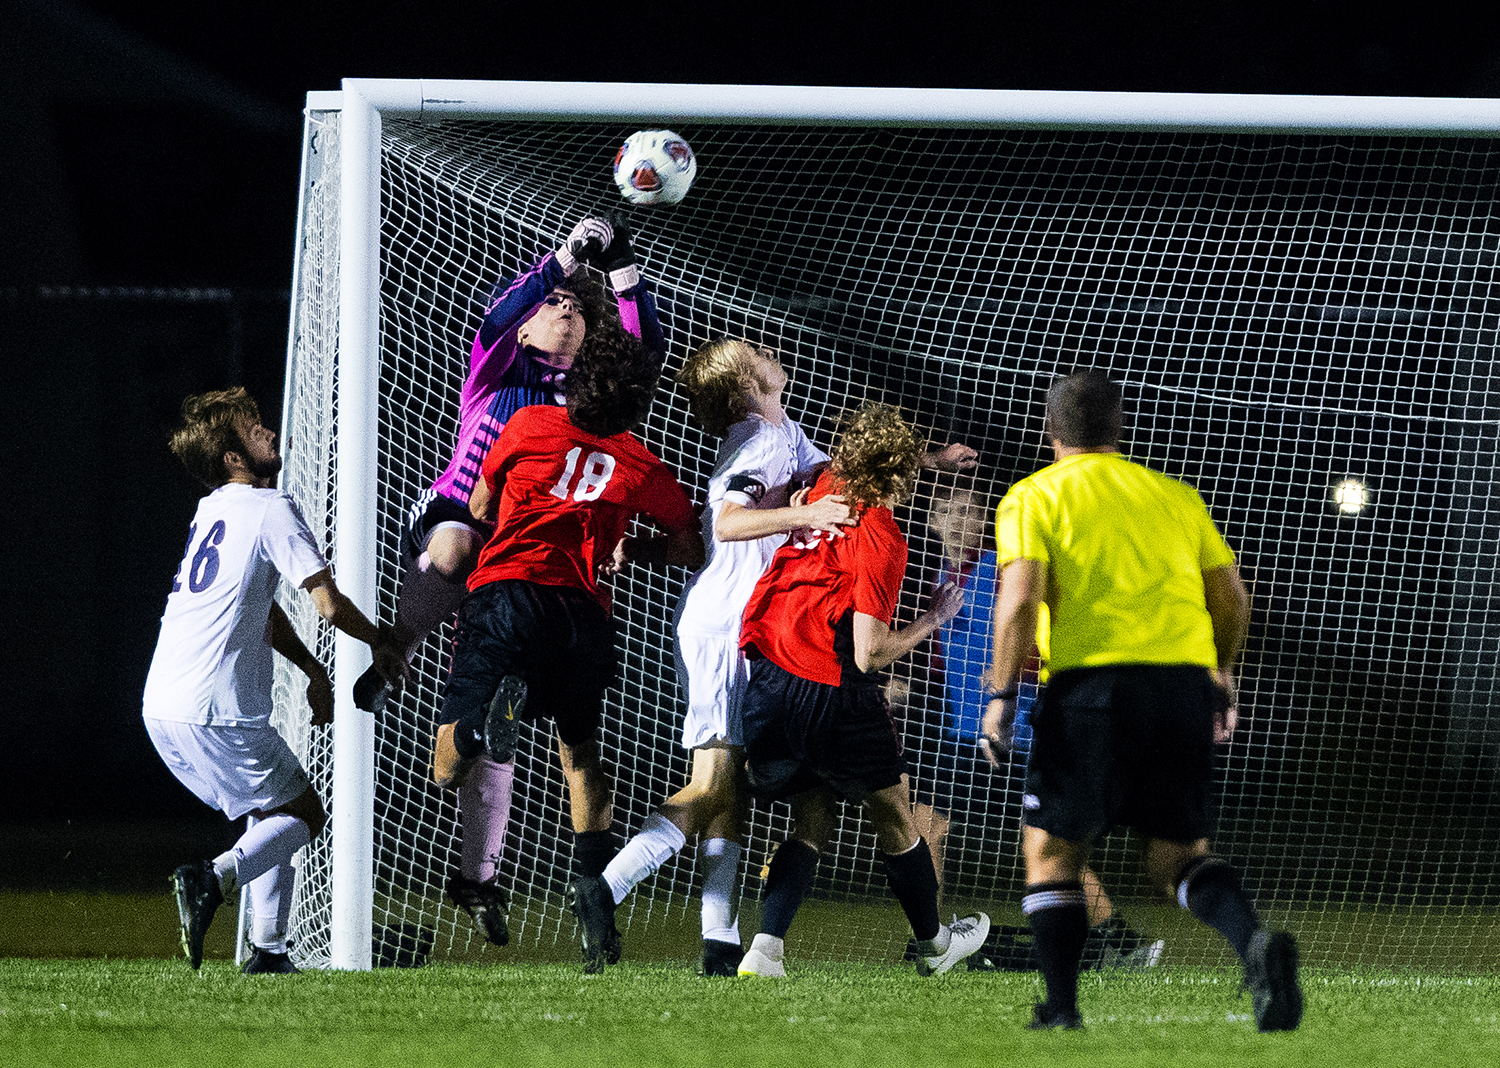 Springfield's Collin Taylor blocks a shot on goal during the IHSA Class 2A Glenwood Soccer Supersectional at Glenwood High School Tuesday, Oct. 30, 2018. [Ted Schurter/The State Journal-Register]